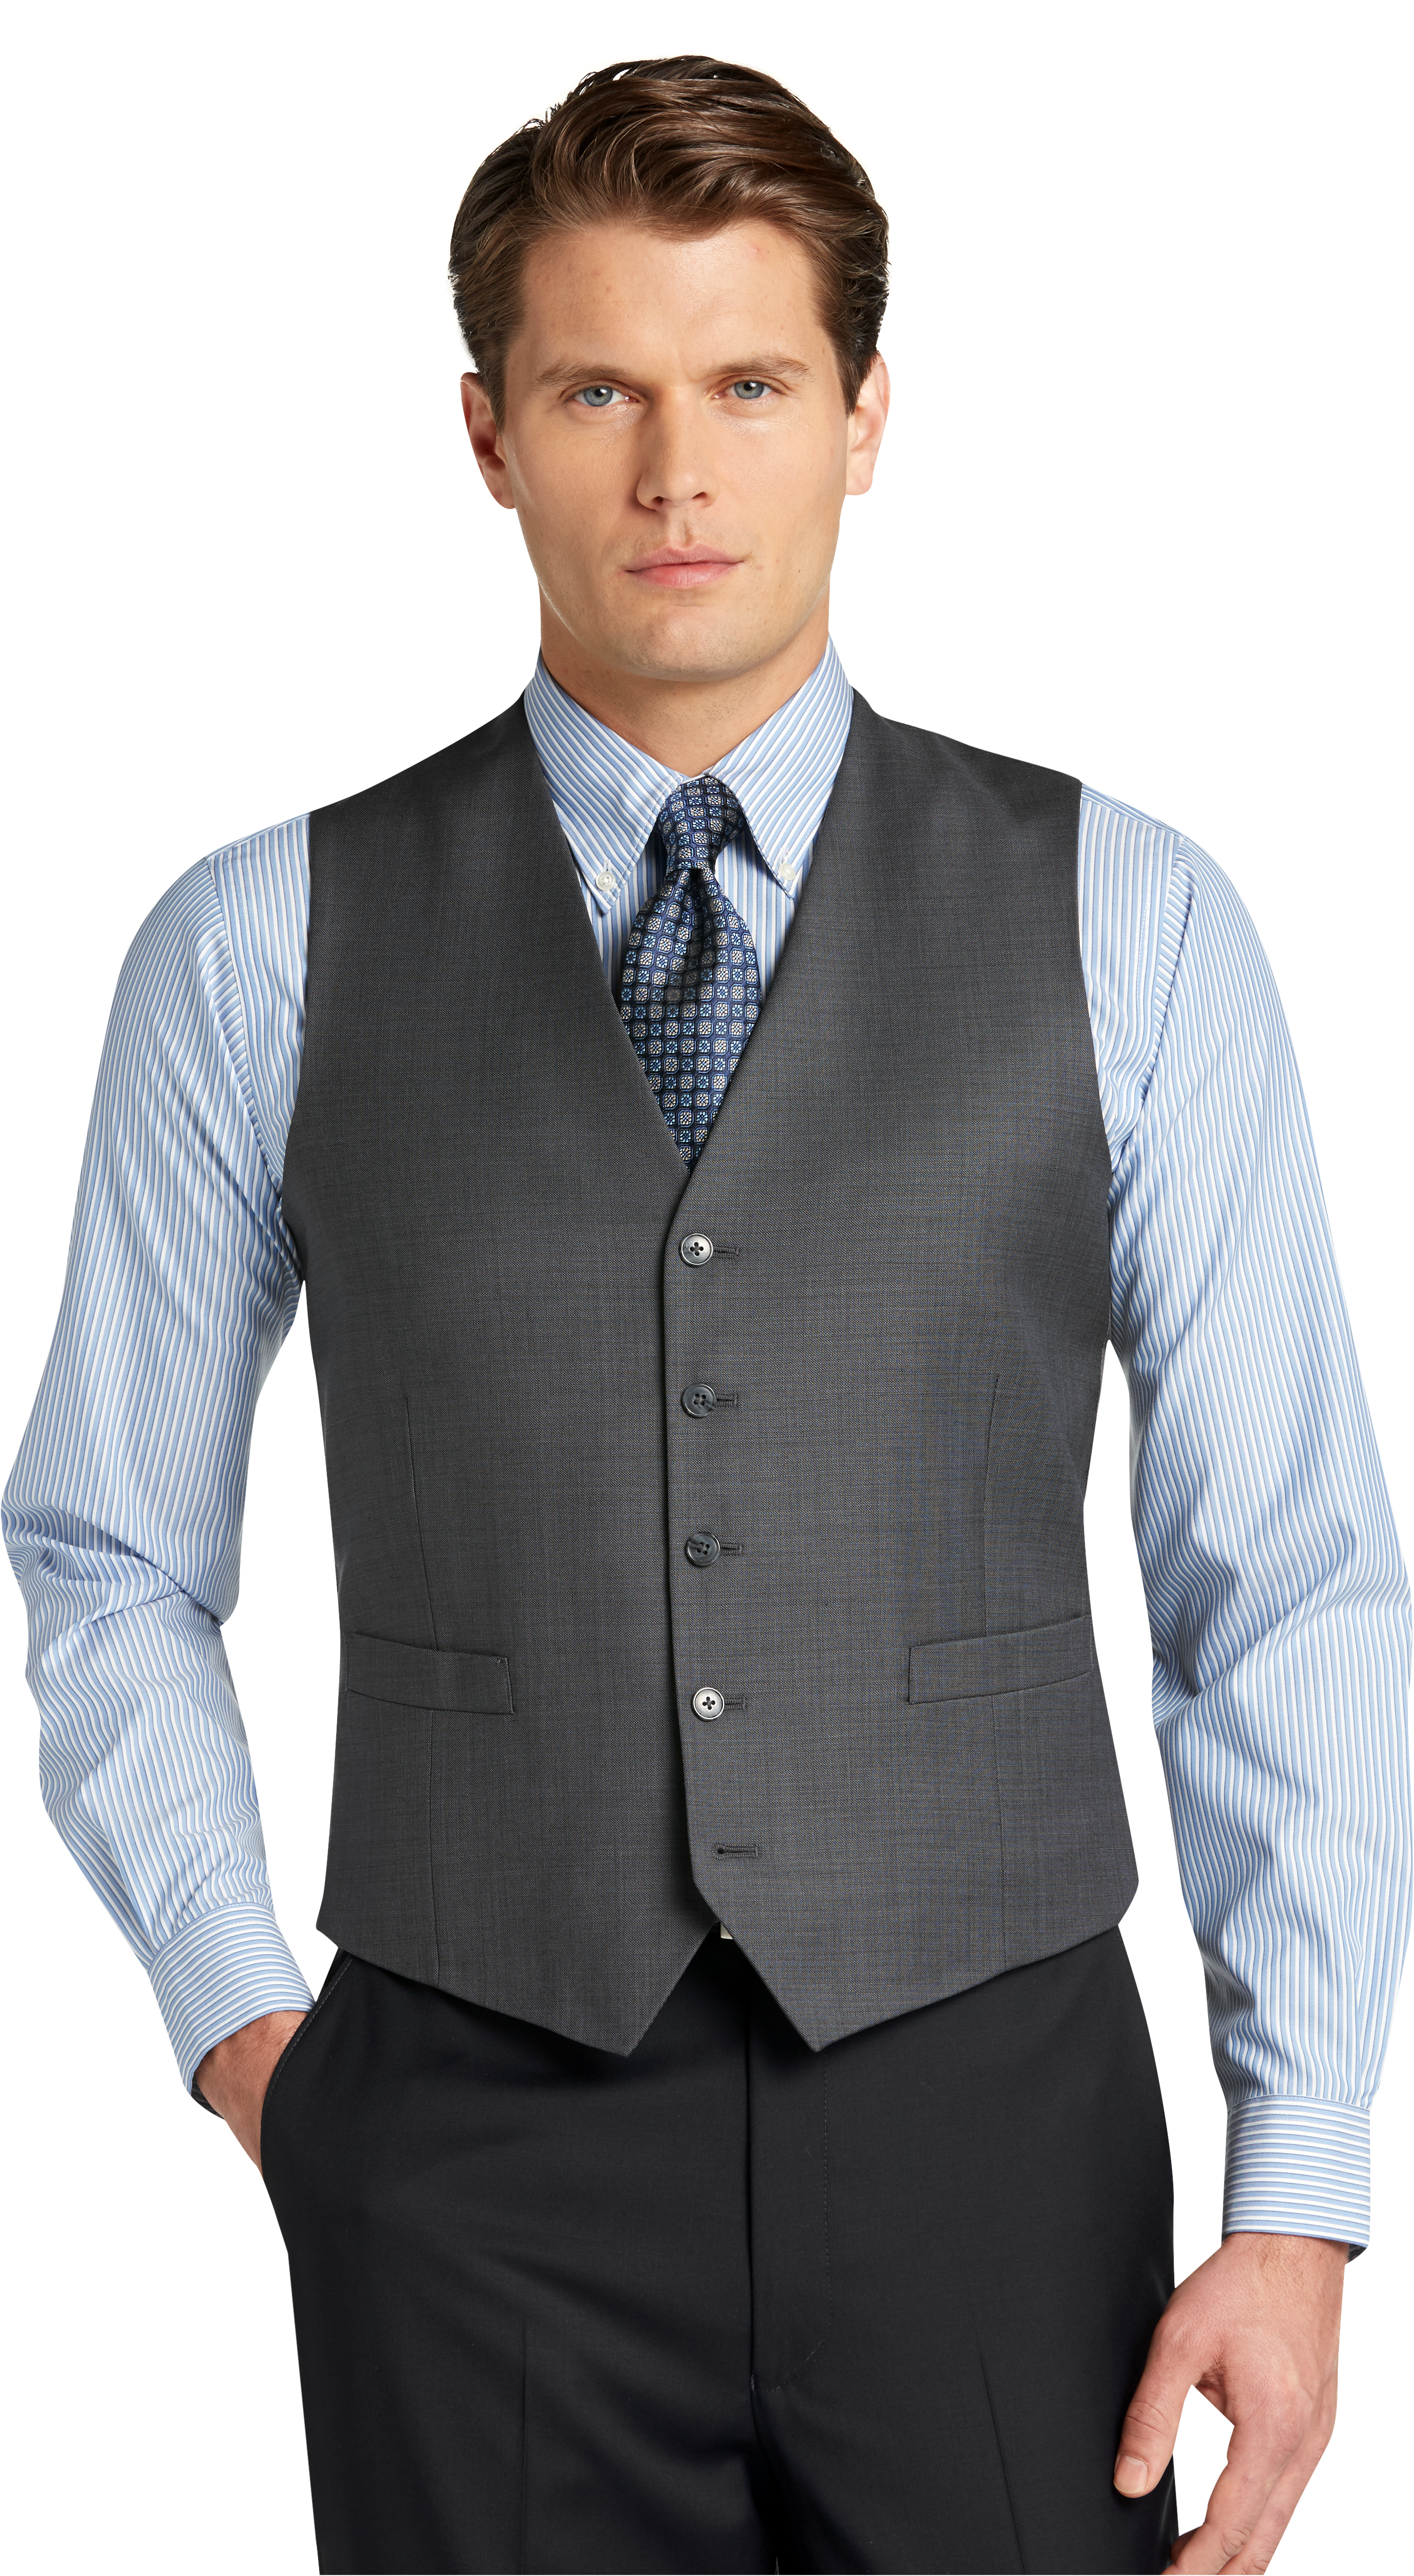 413b7eb82859 Traveler Collection Tailored Fit Sharkskin Suit Separate Vest - Big & Tall  #3FPD